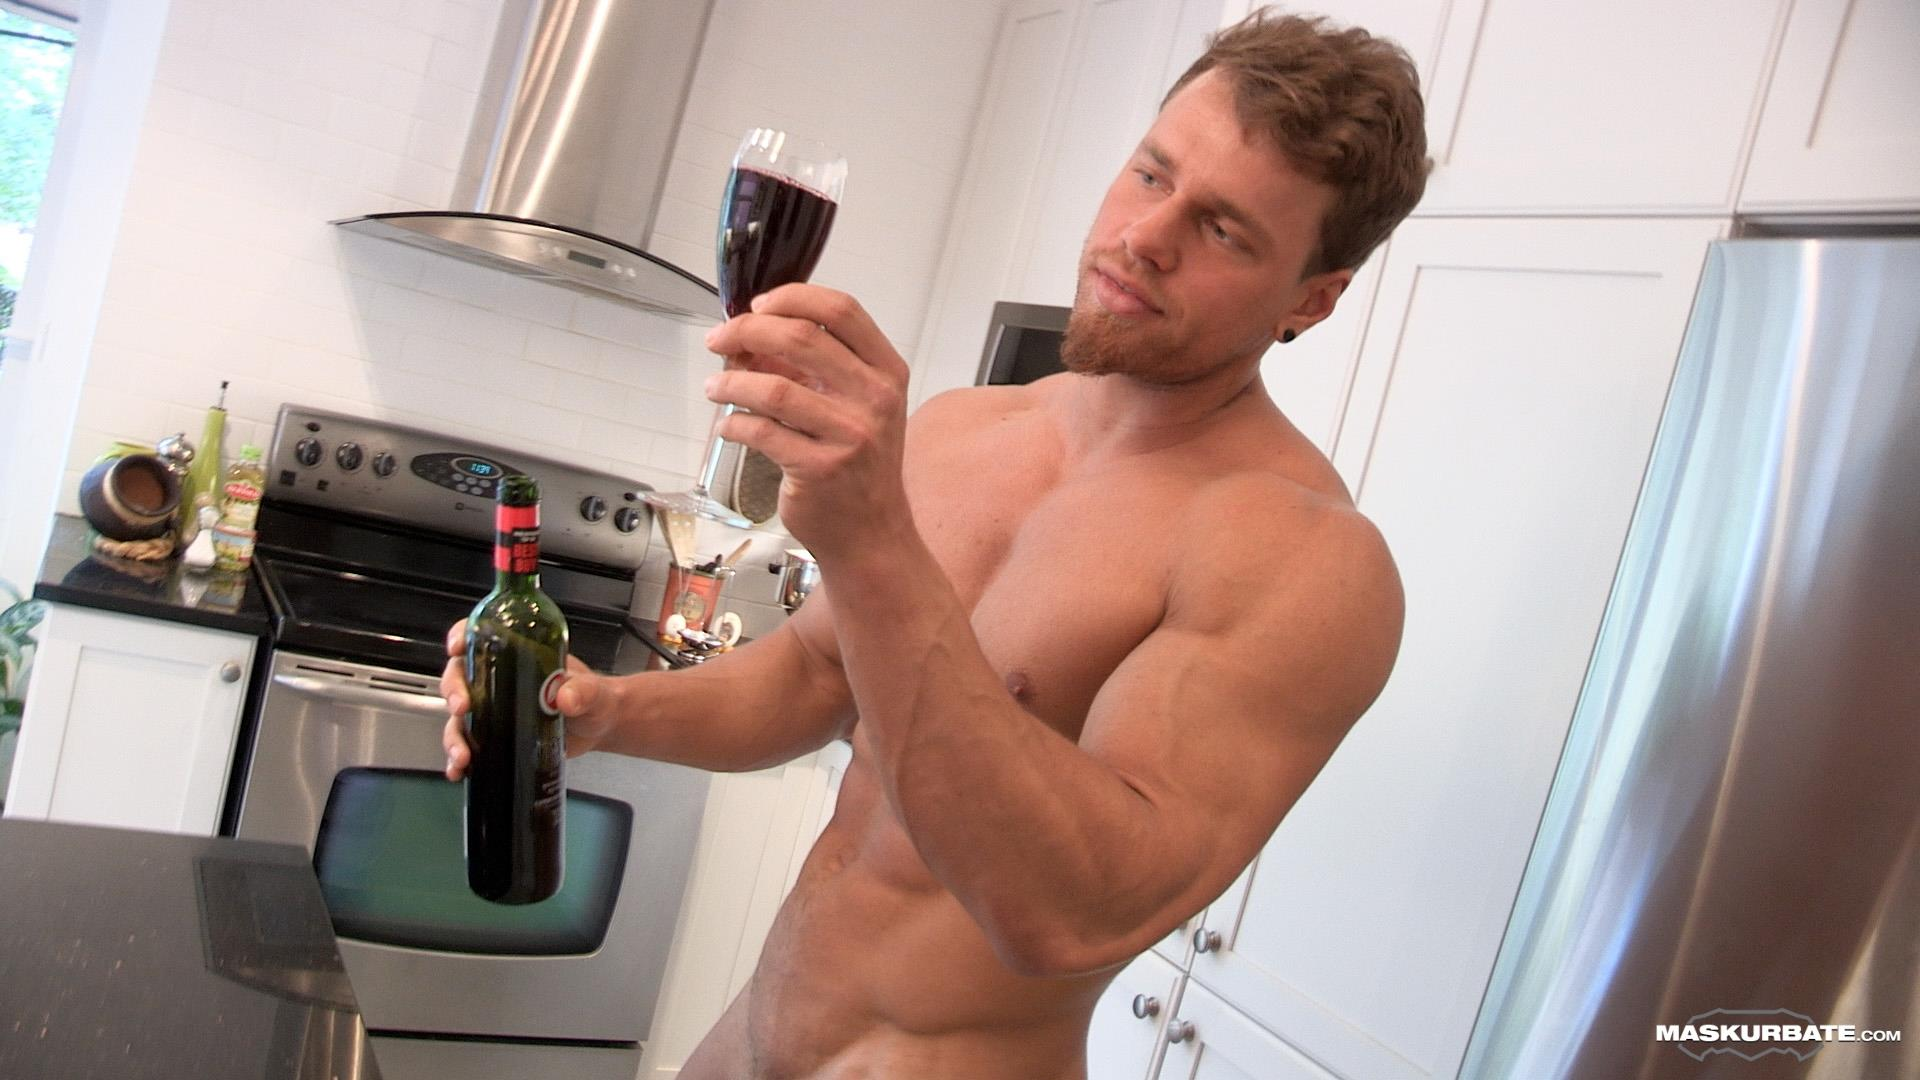 Maskurbate-Muscular-Guy-With-A-Big-Uncut-Cock-Jerking-Off-15 Jerking Off My Big Uncut Cock Into My Friends Wine Glass On New Years Eve